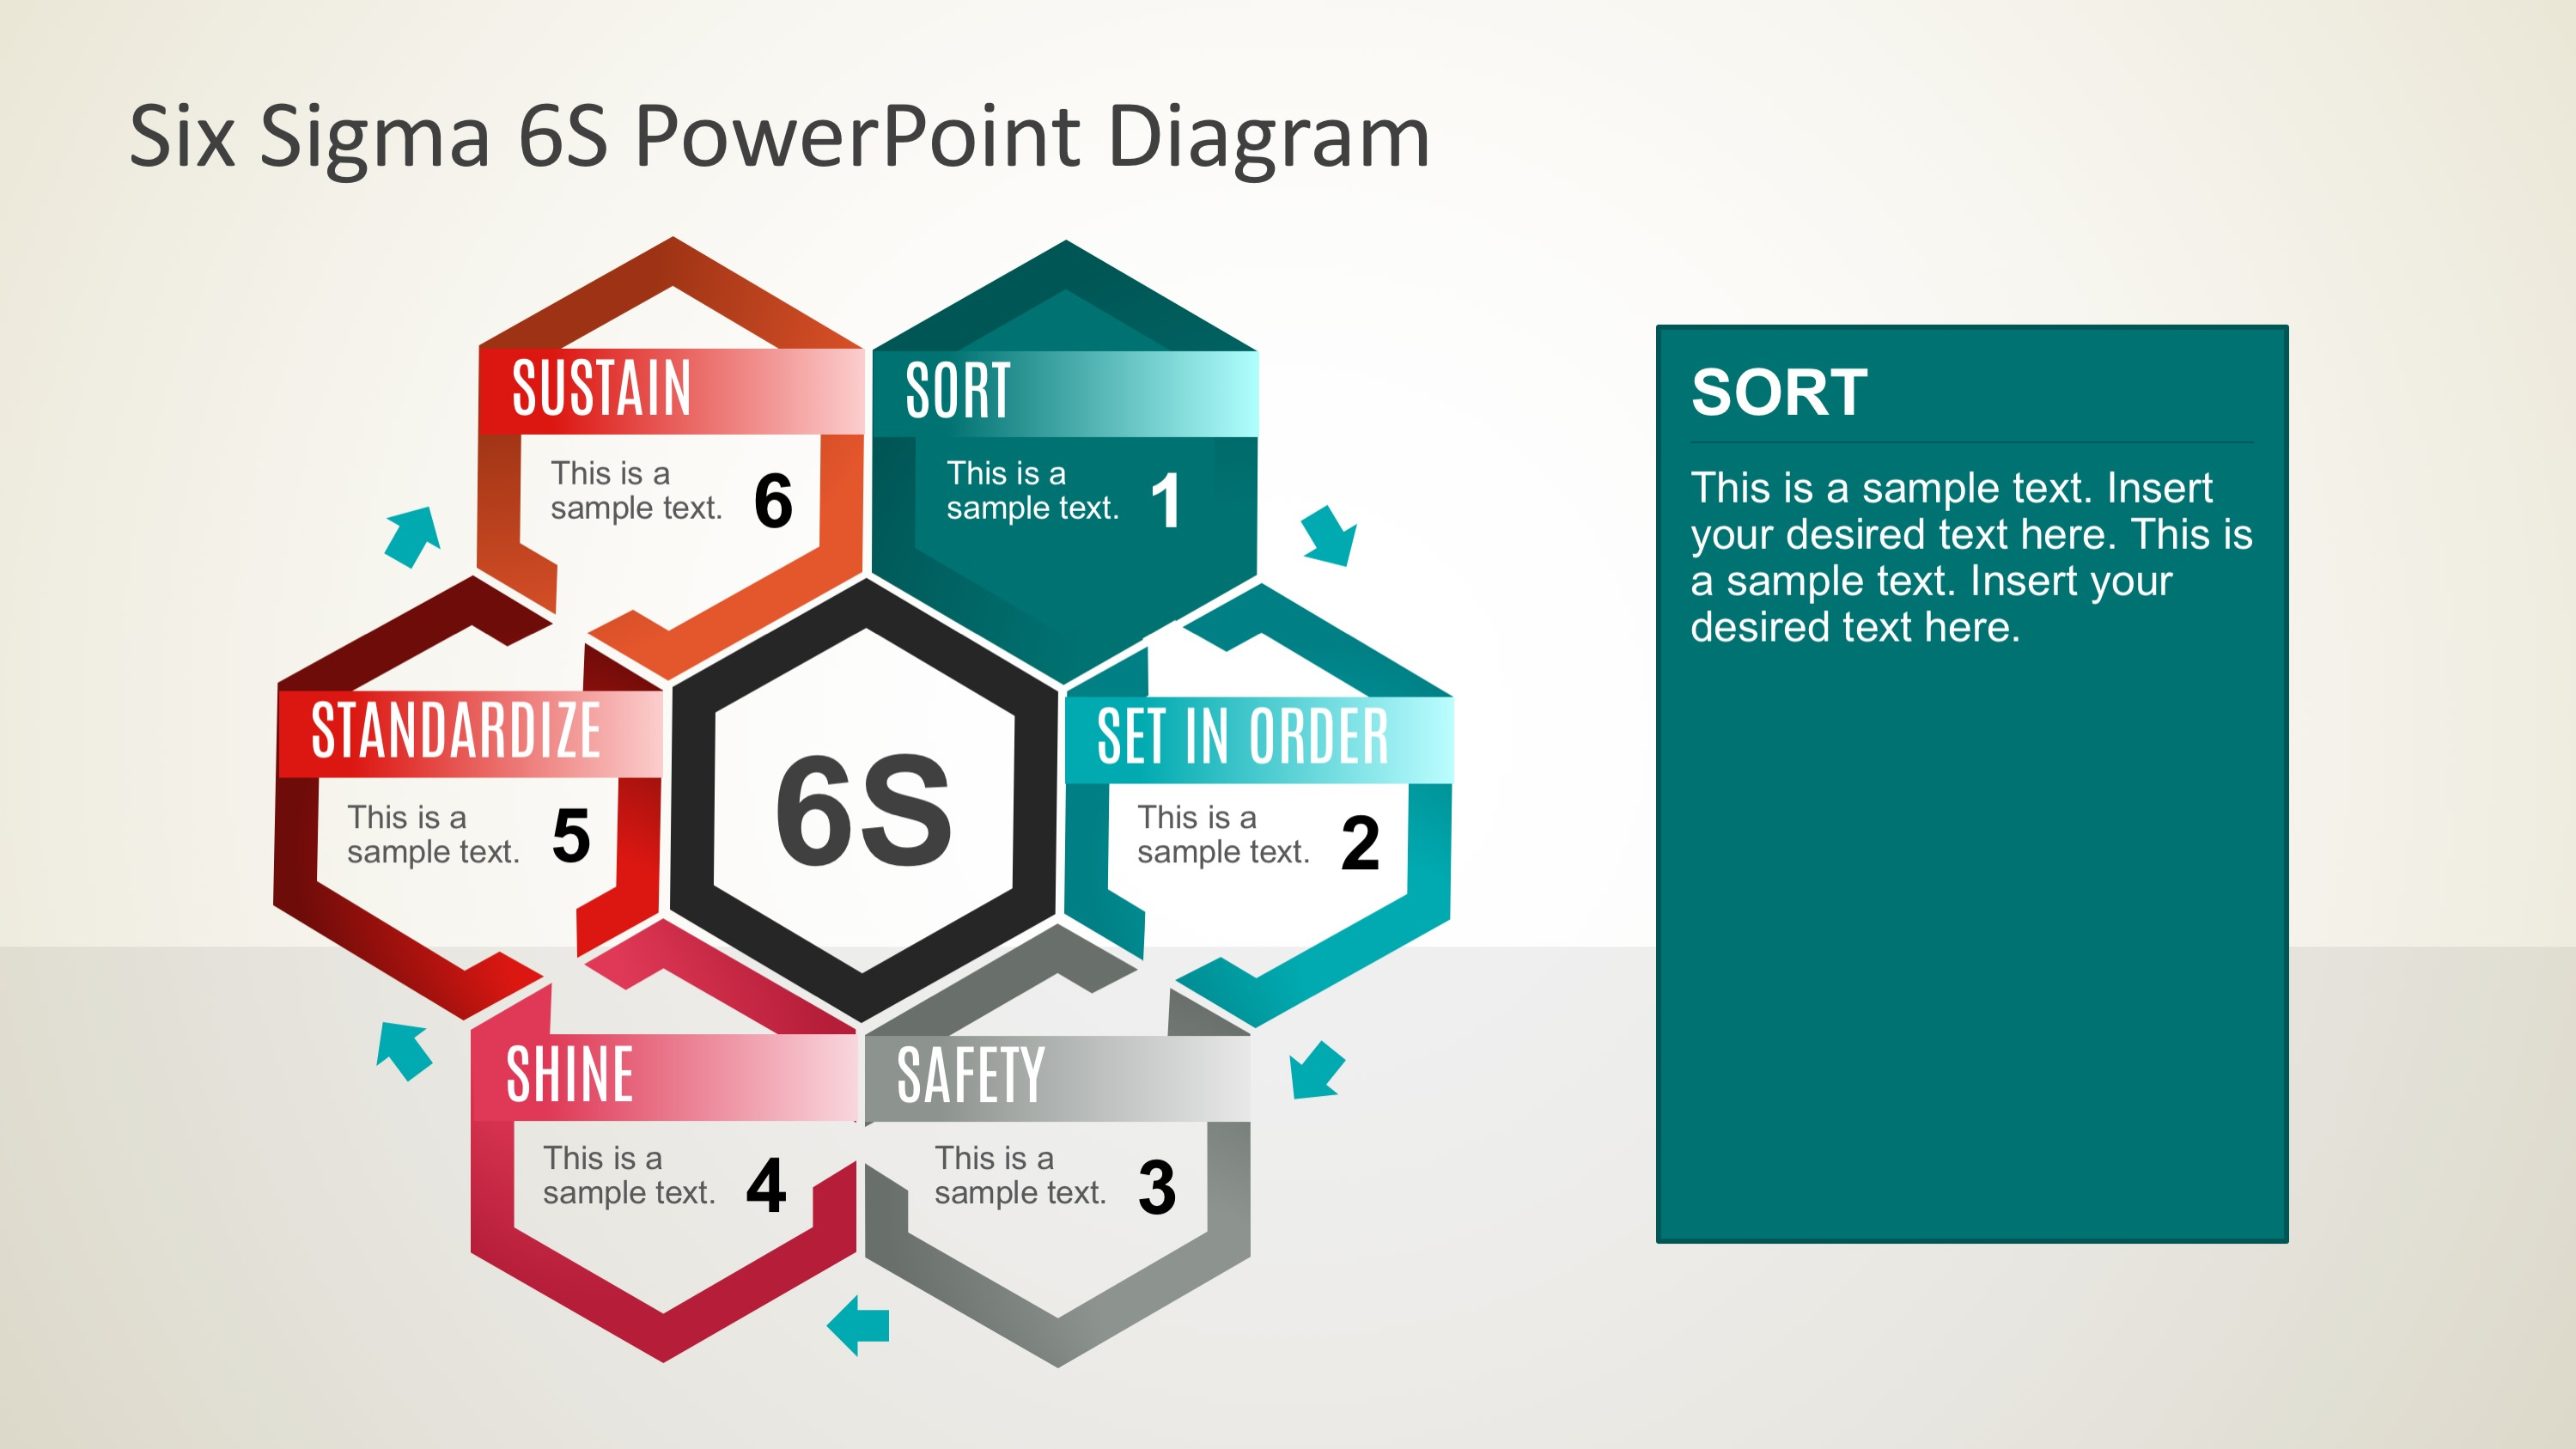 Six Sigma 6S PowerPoint Diagram